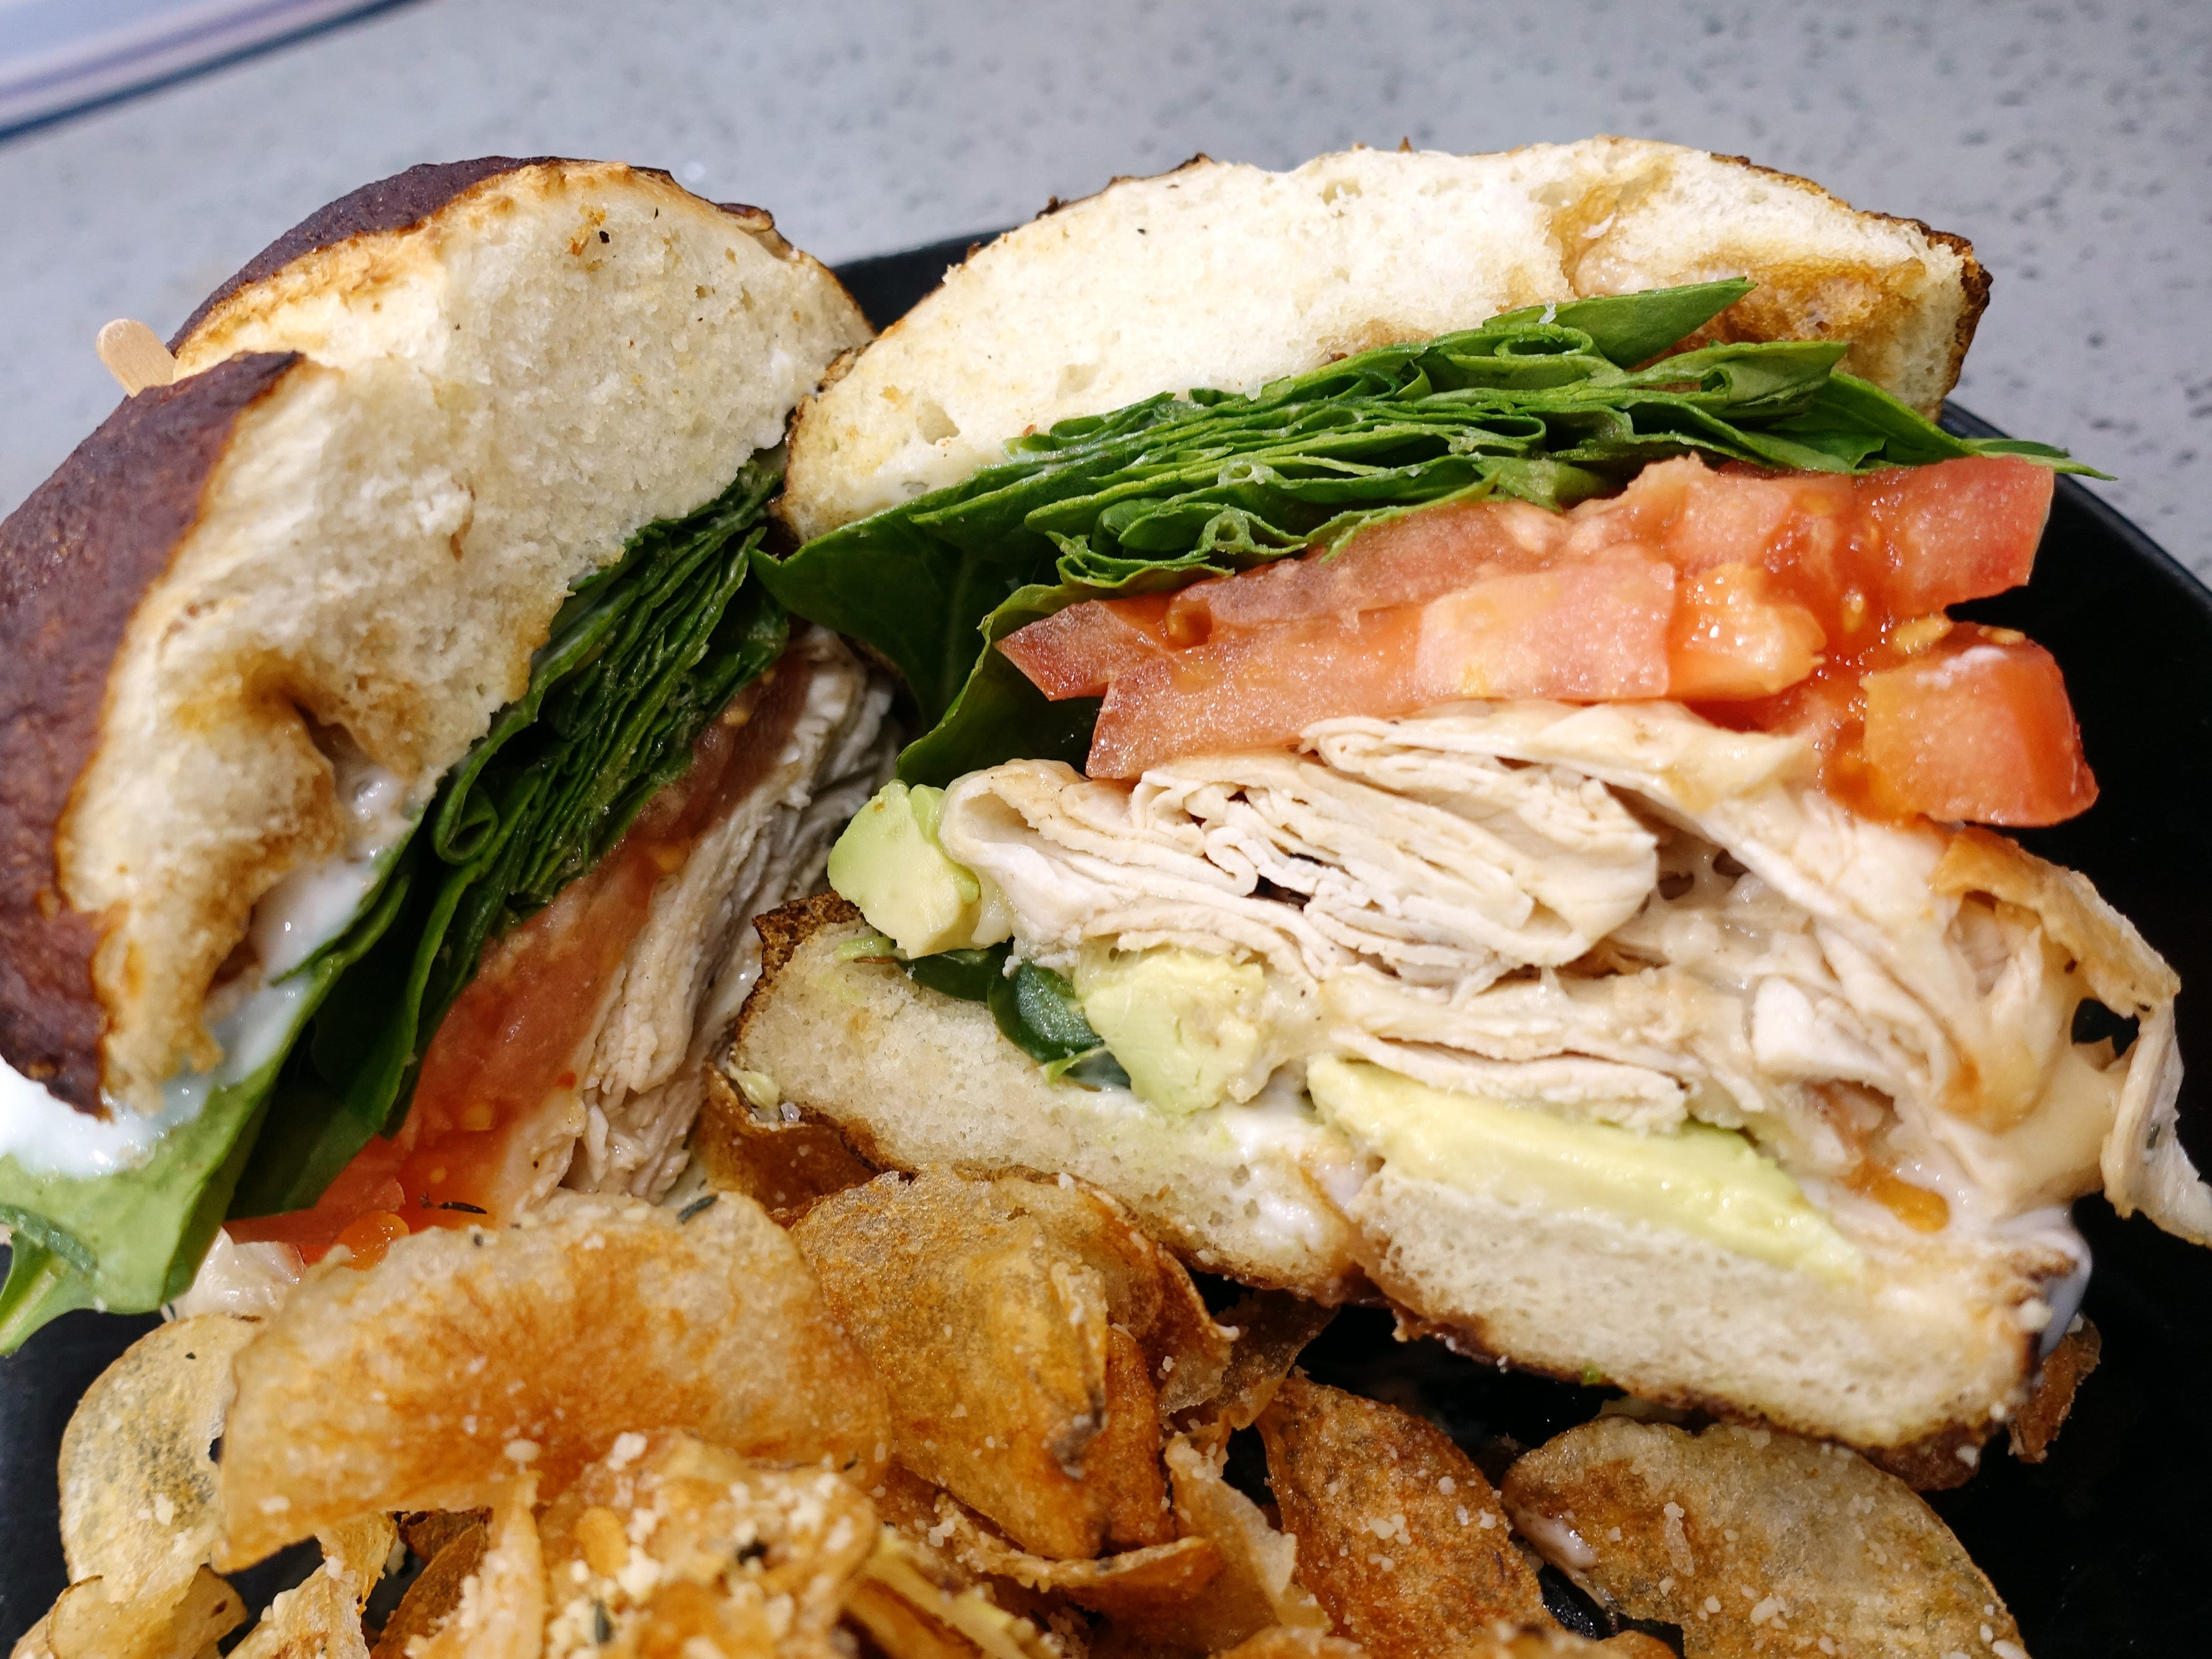 Hot chick sandwich with carved chicken breast, smoked mozzarella, ranch, spinach, tomato, avocado and jalapenos at Sweetest Season Artisan Eatery in Tempe.